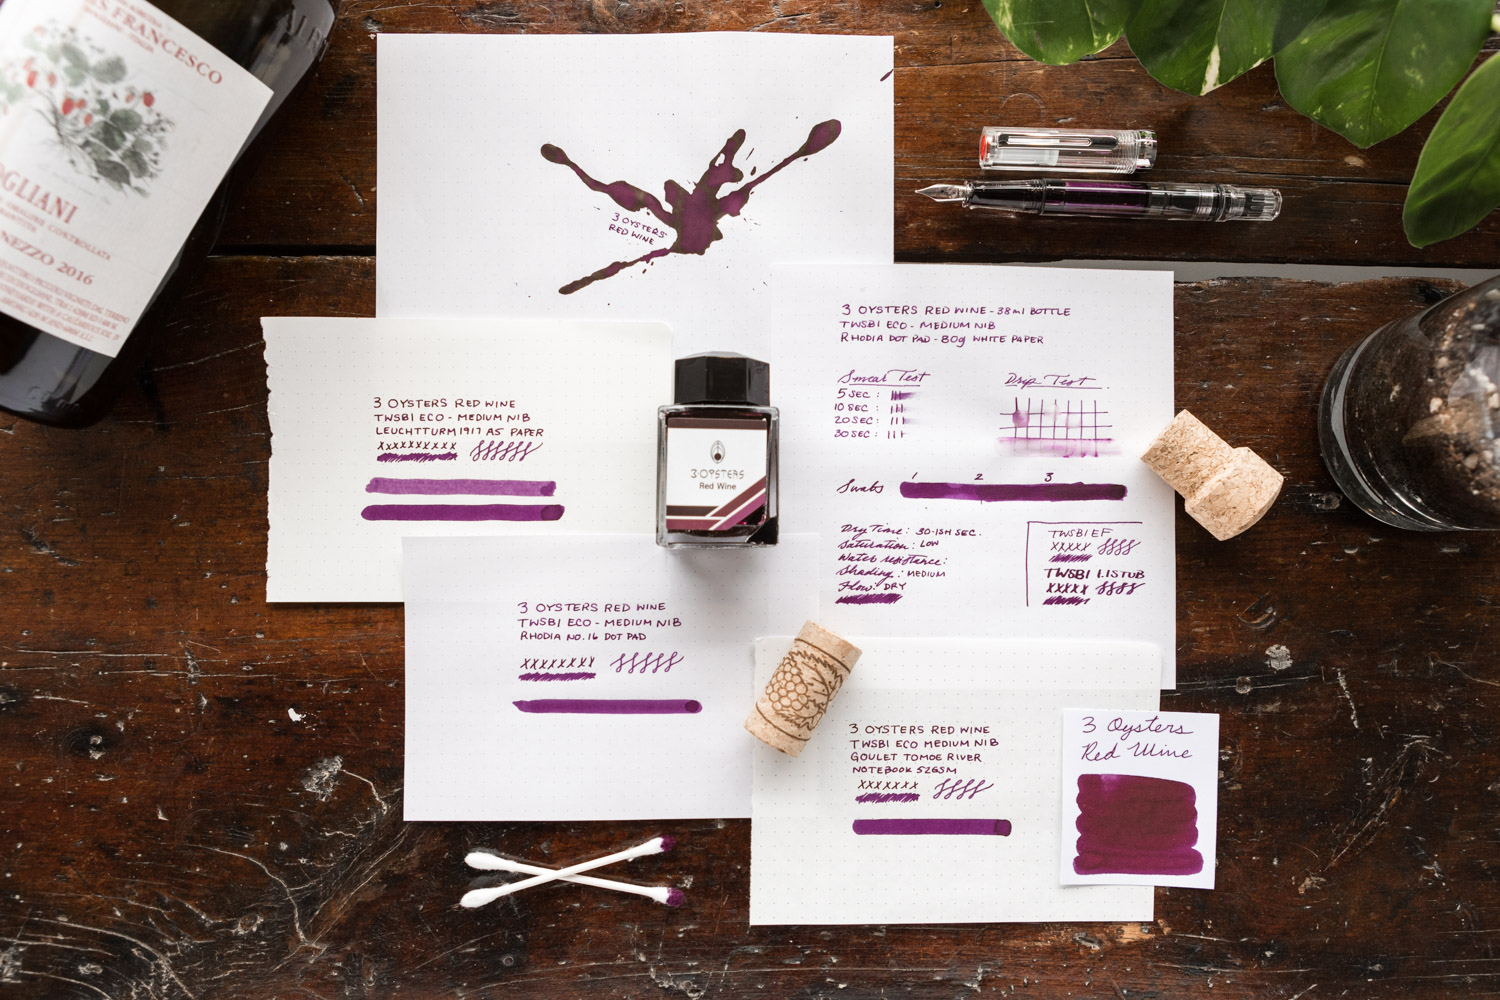 A layout of ink review materials for 3 Oysters Red Wine Ink.